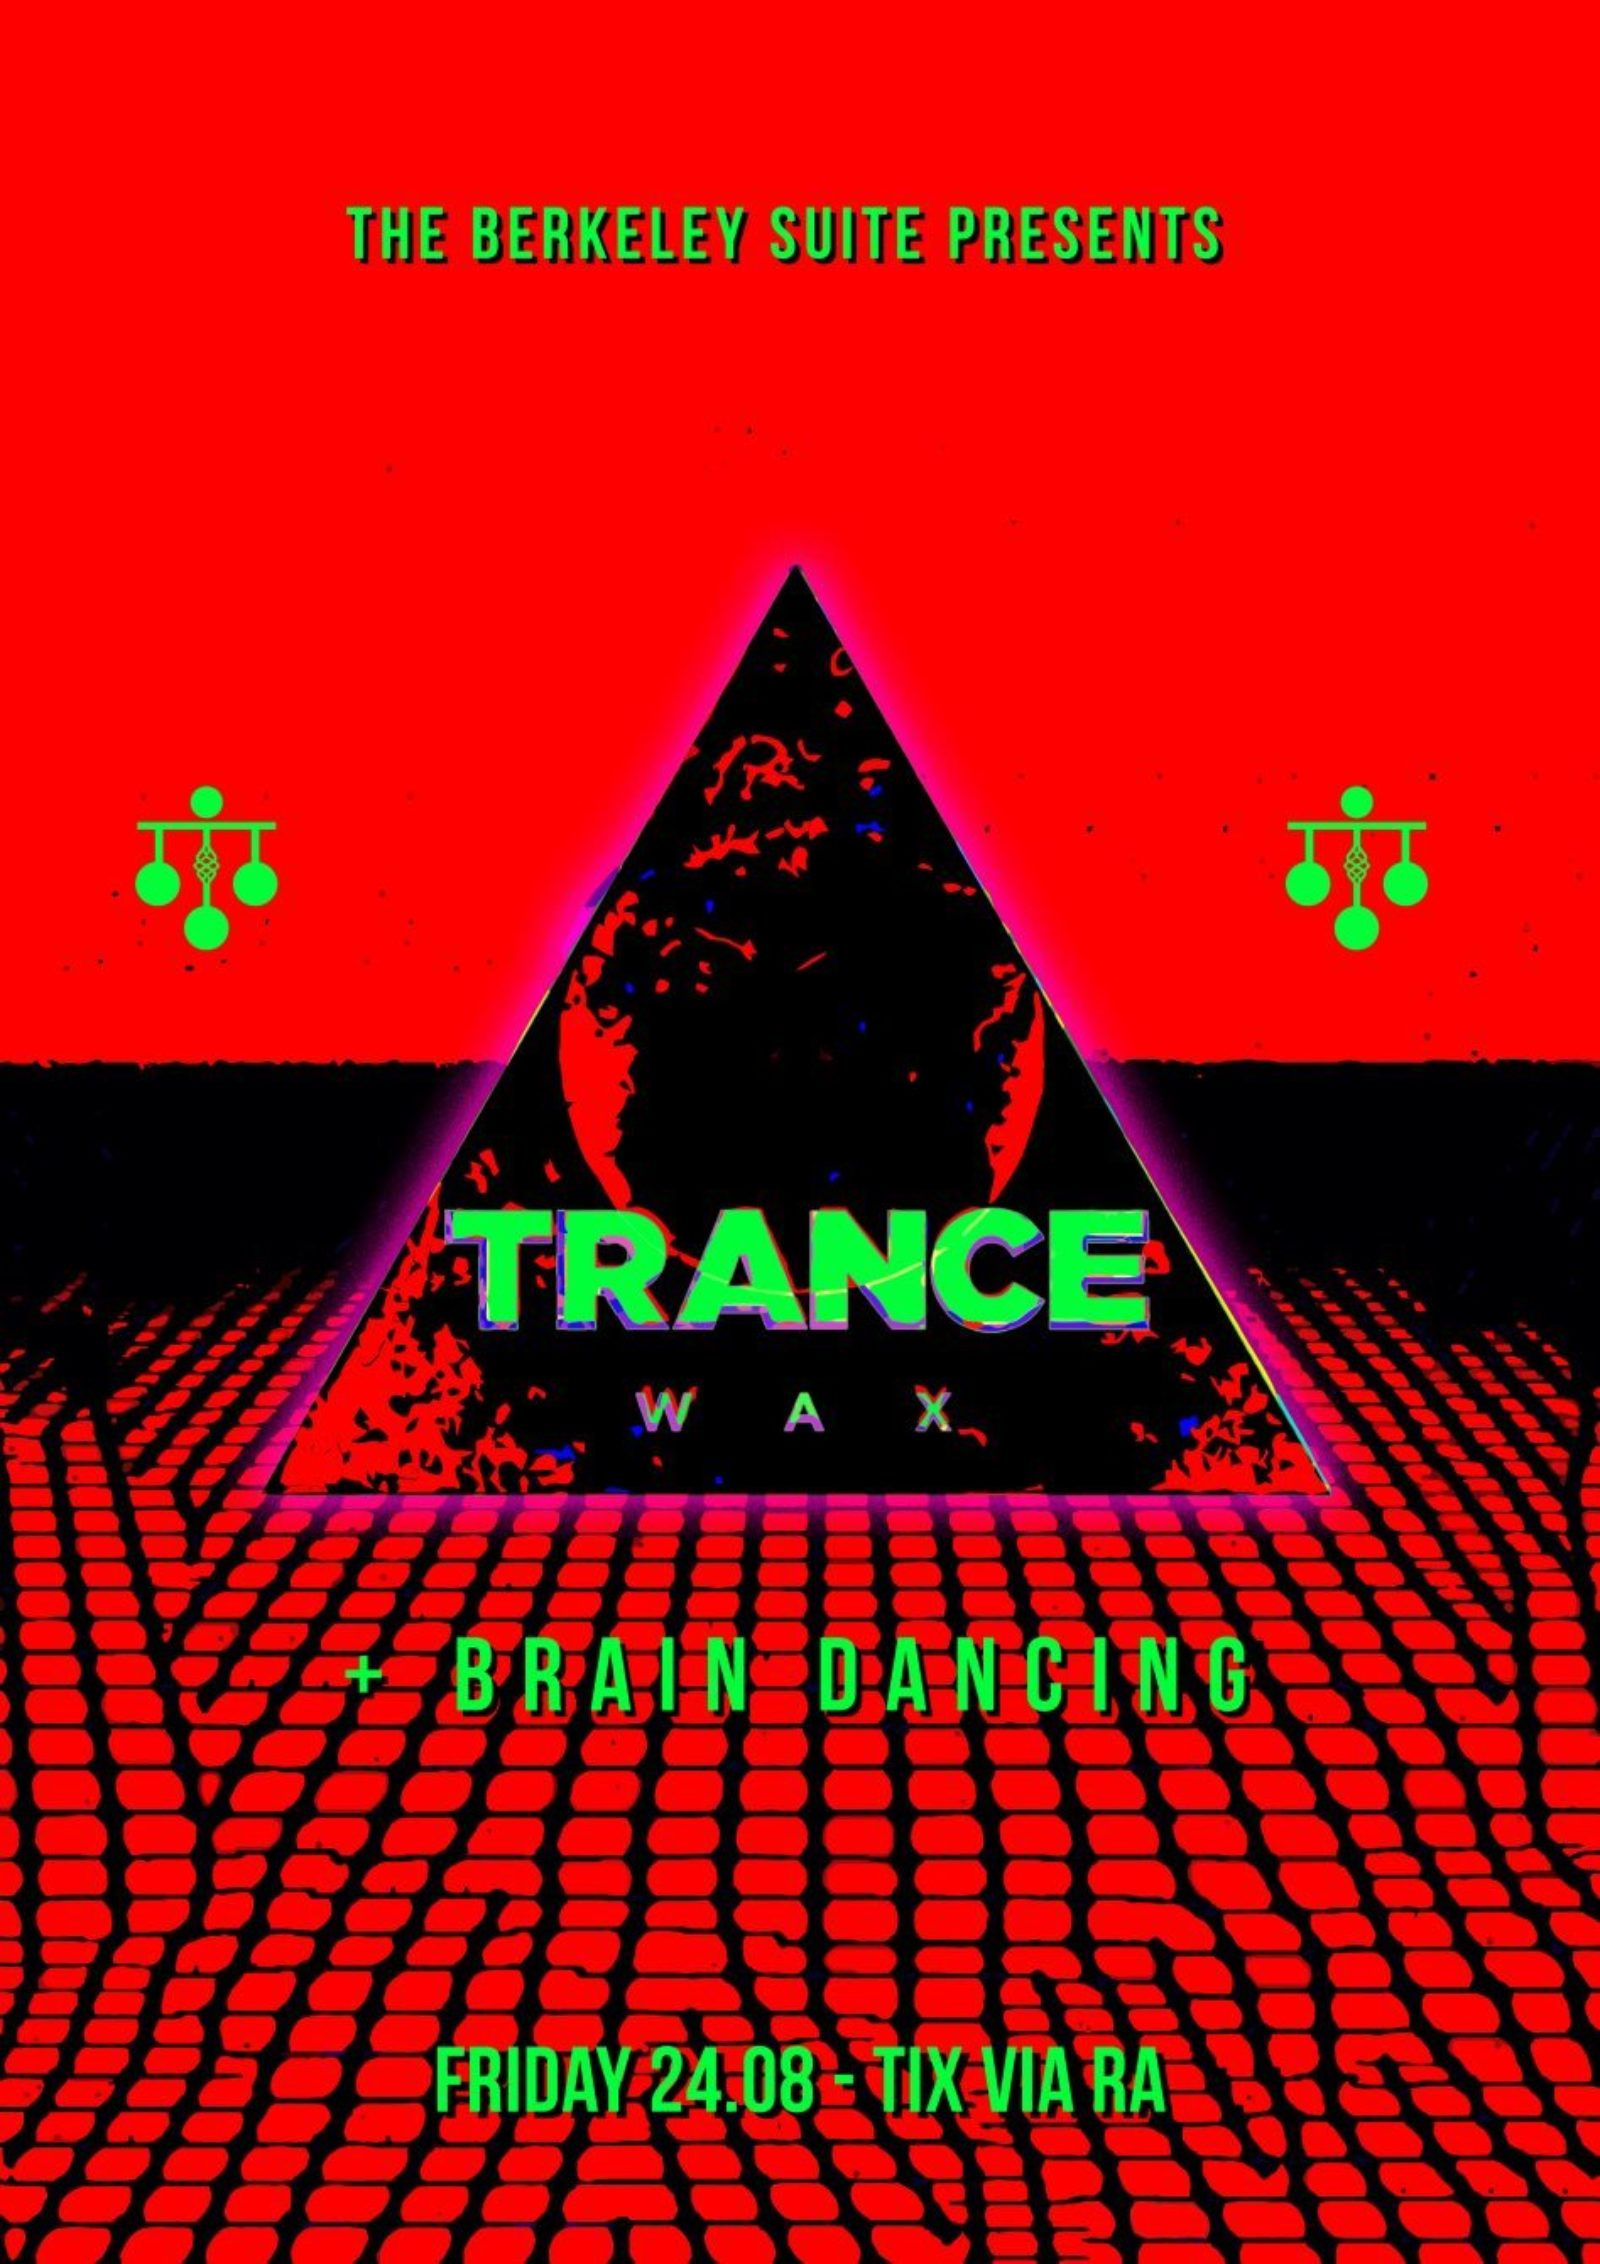 TRANCE WAX & Brain Dancing